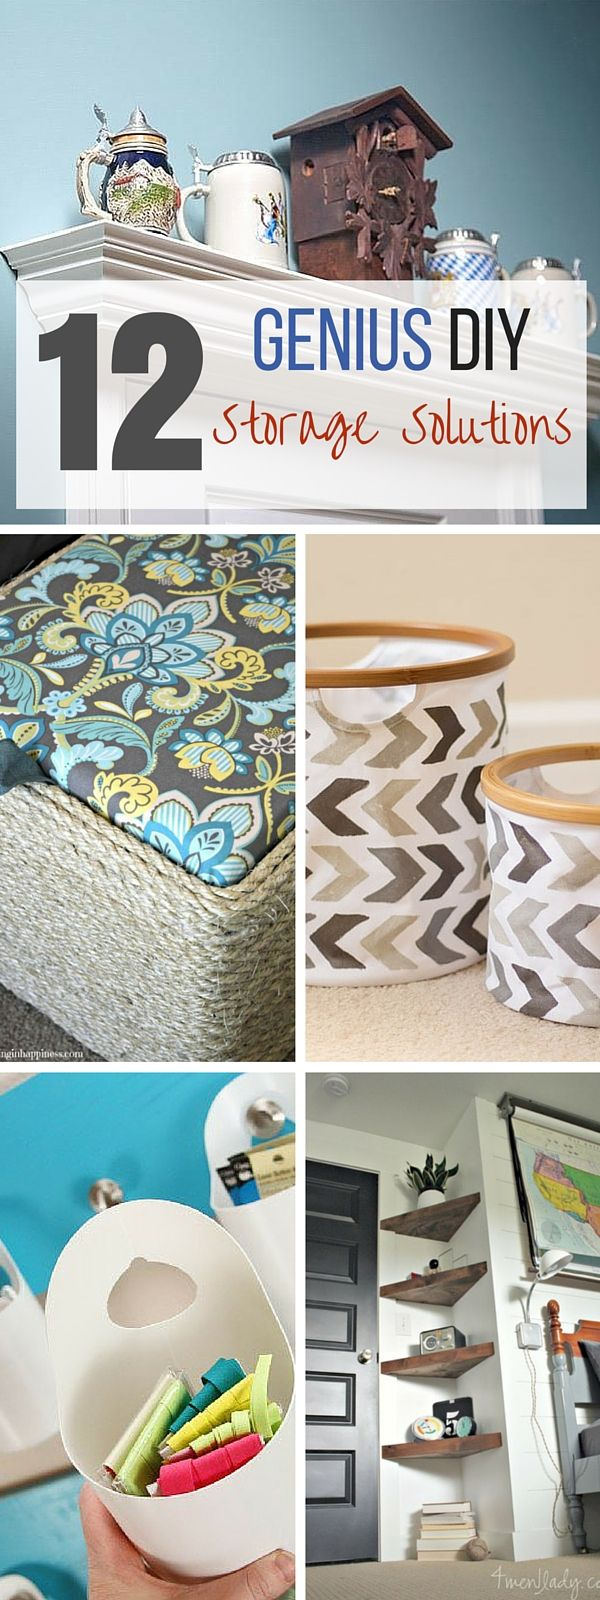 I would actually use all these ideas, wow what a great list! :-D #DIY your way to more storage at #home!